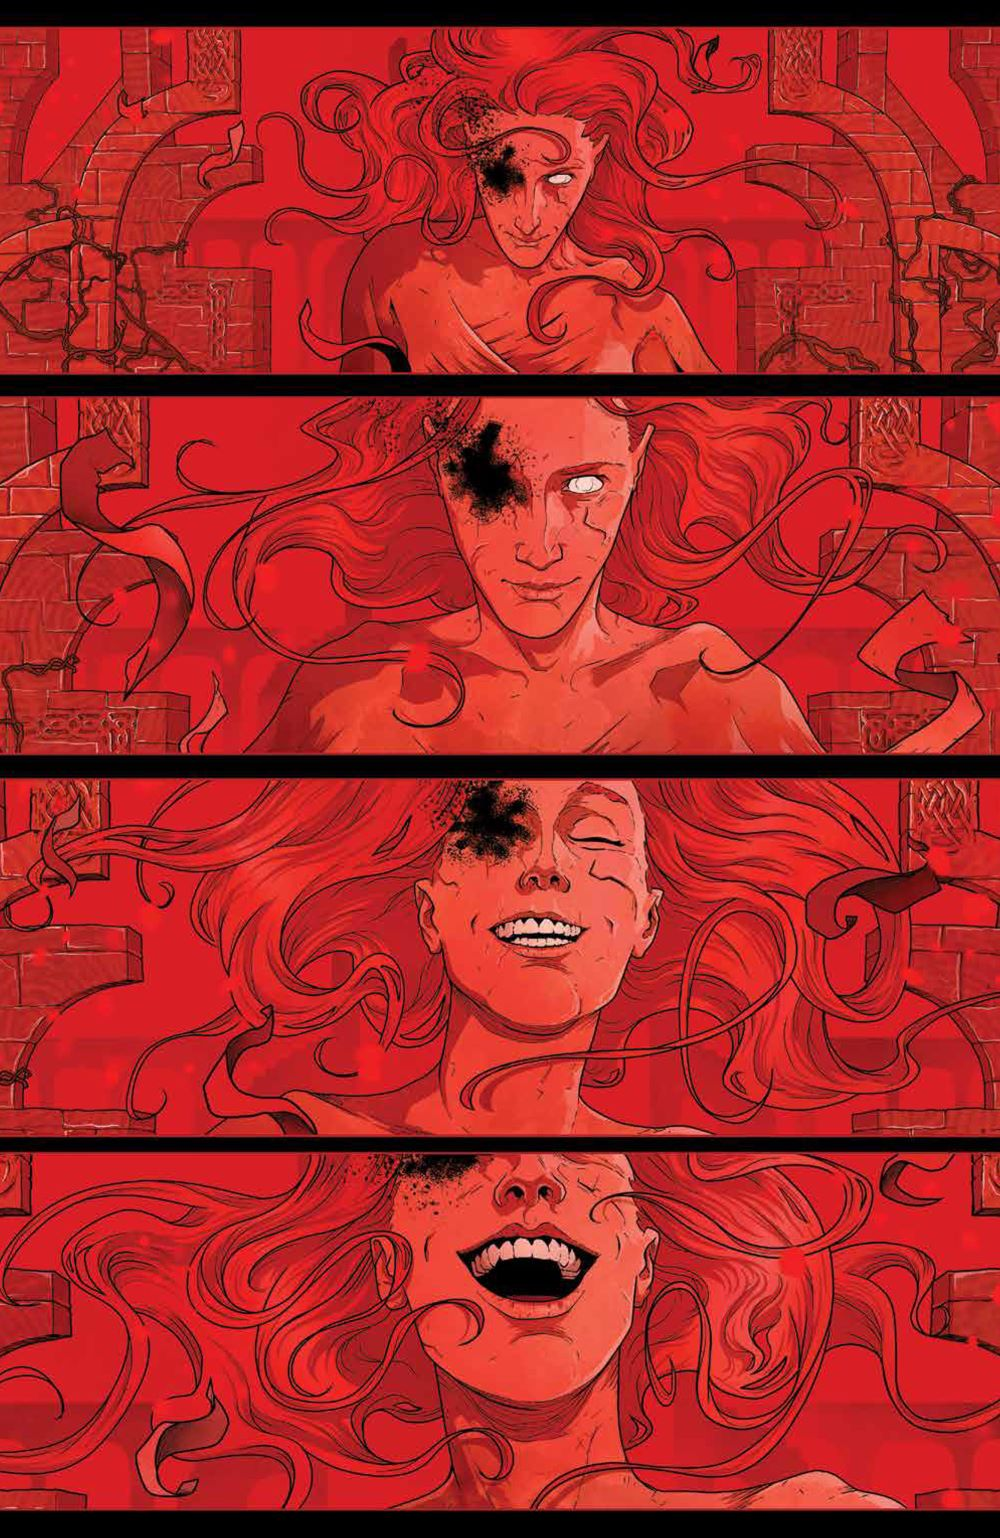 RedMother_009_PRESS_3 ComicList Previews: THE RED MOTHER #9